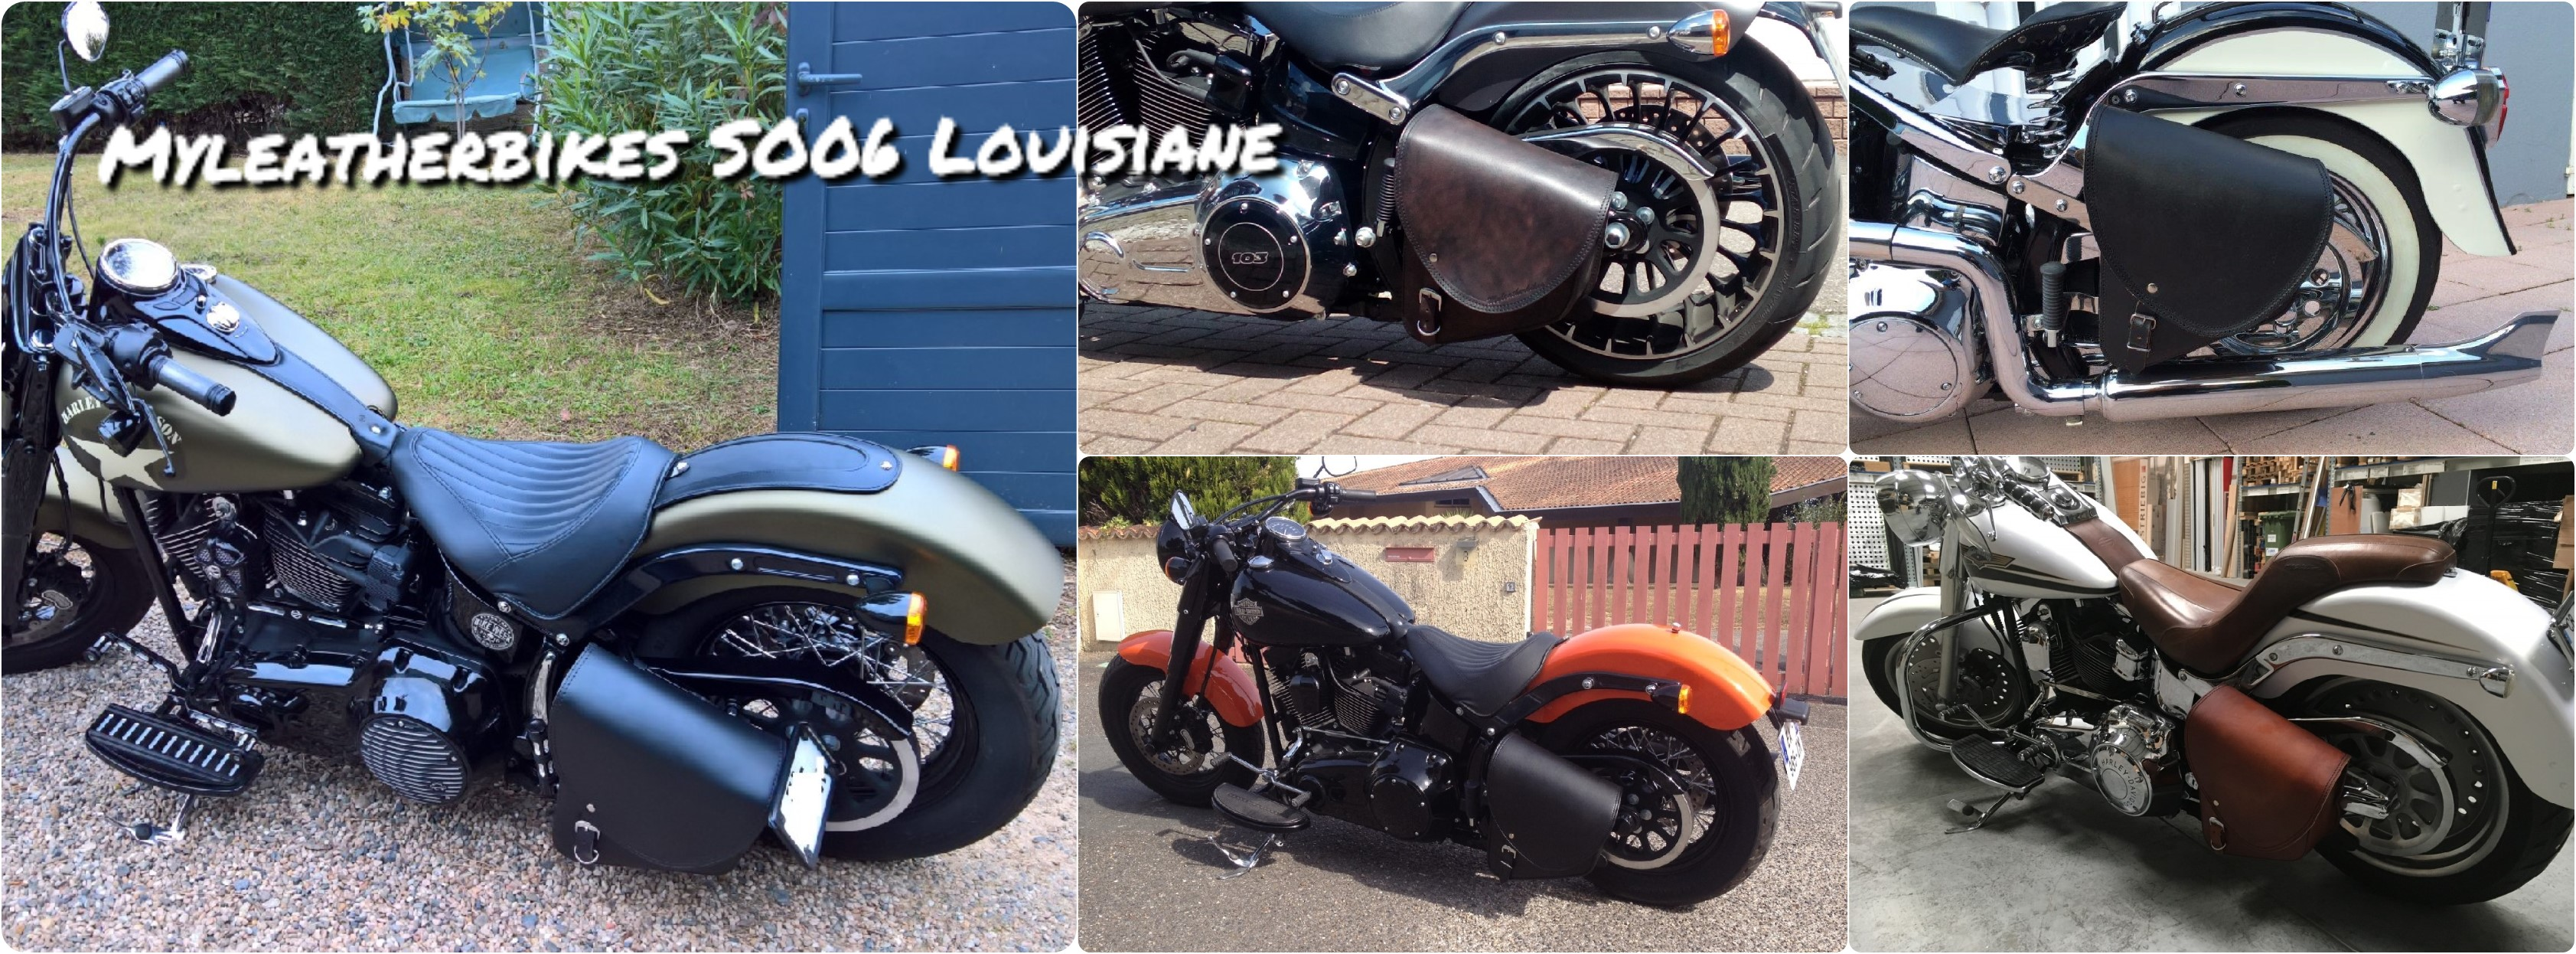 sacoche softail so06 louisiane rexine